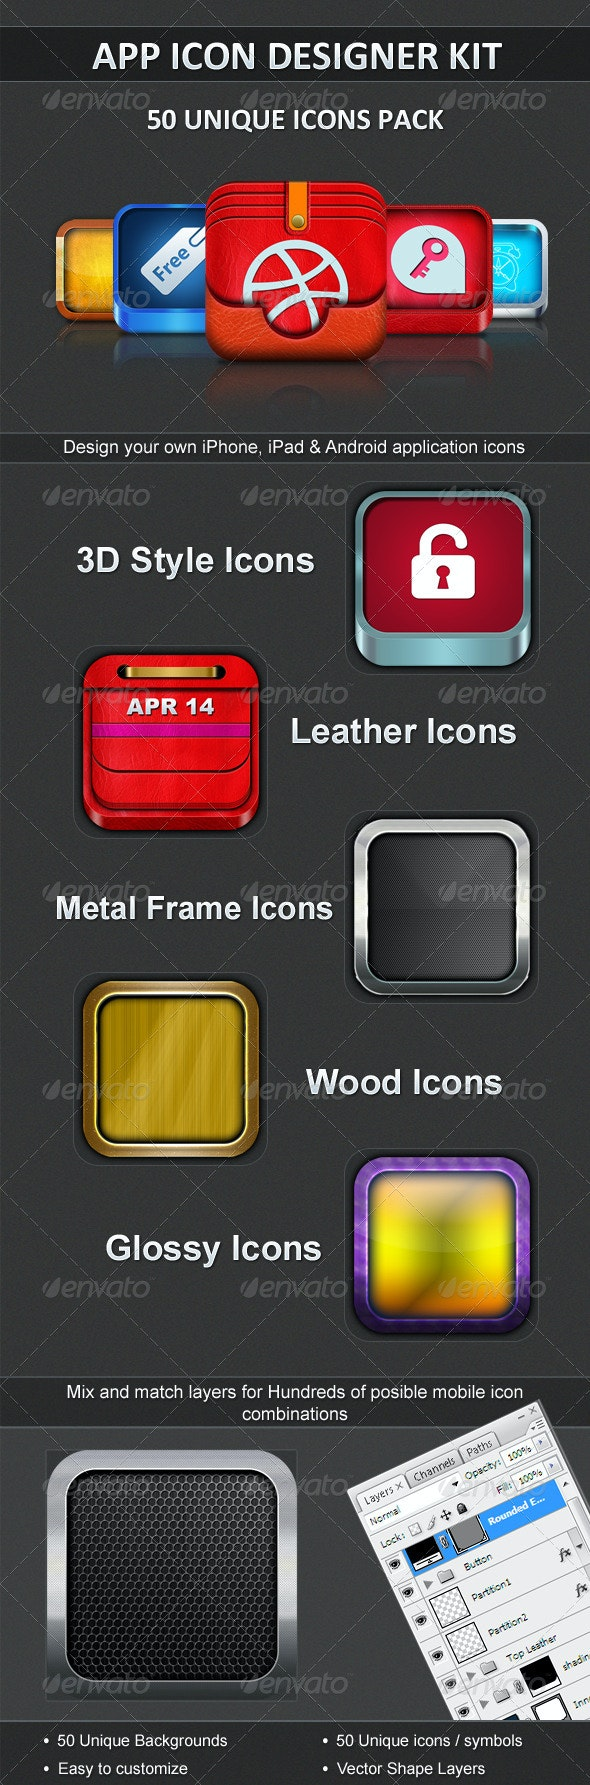 App Icon Designer Kit by Apps400 | GraphicRiver